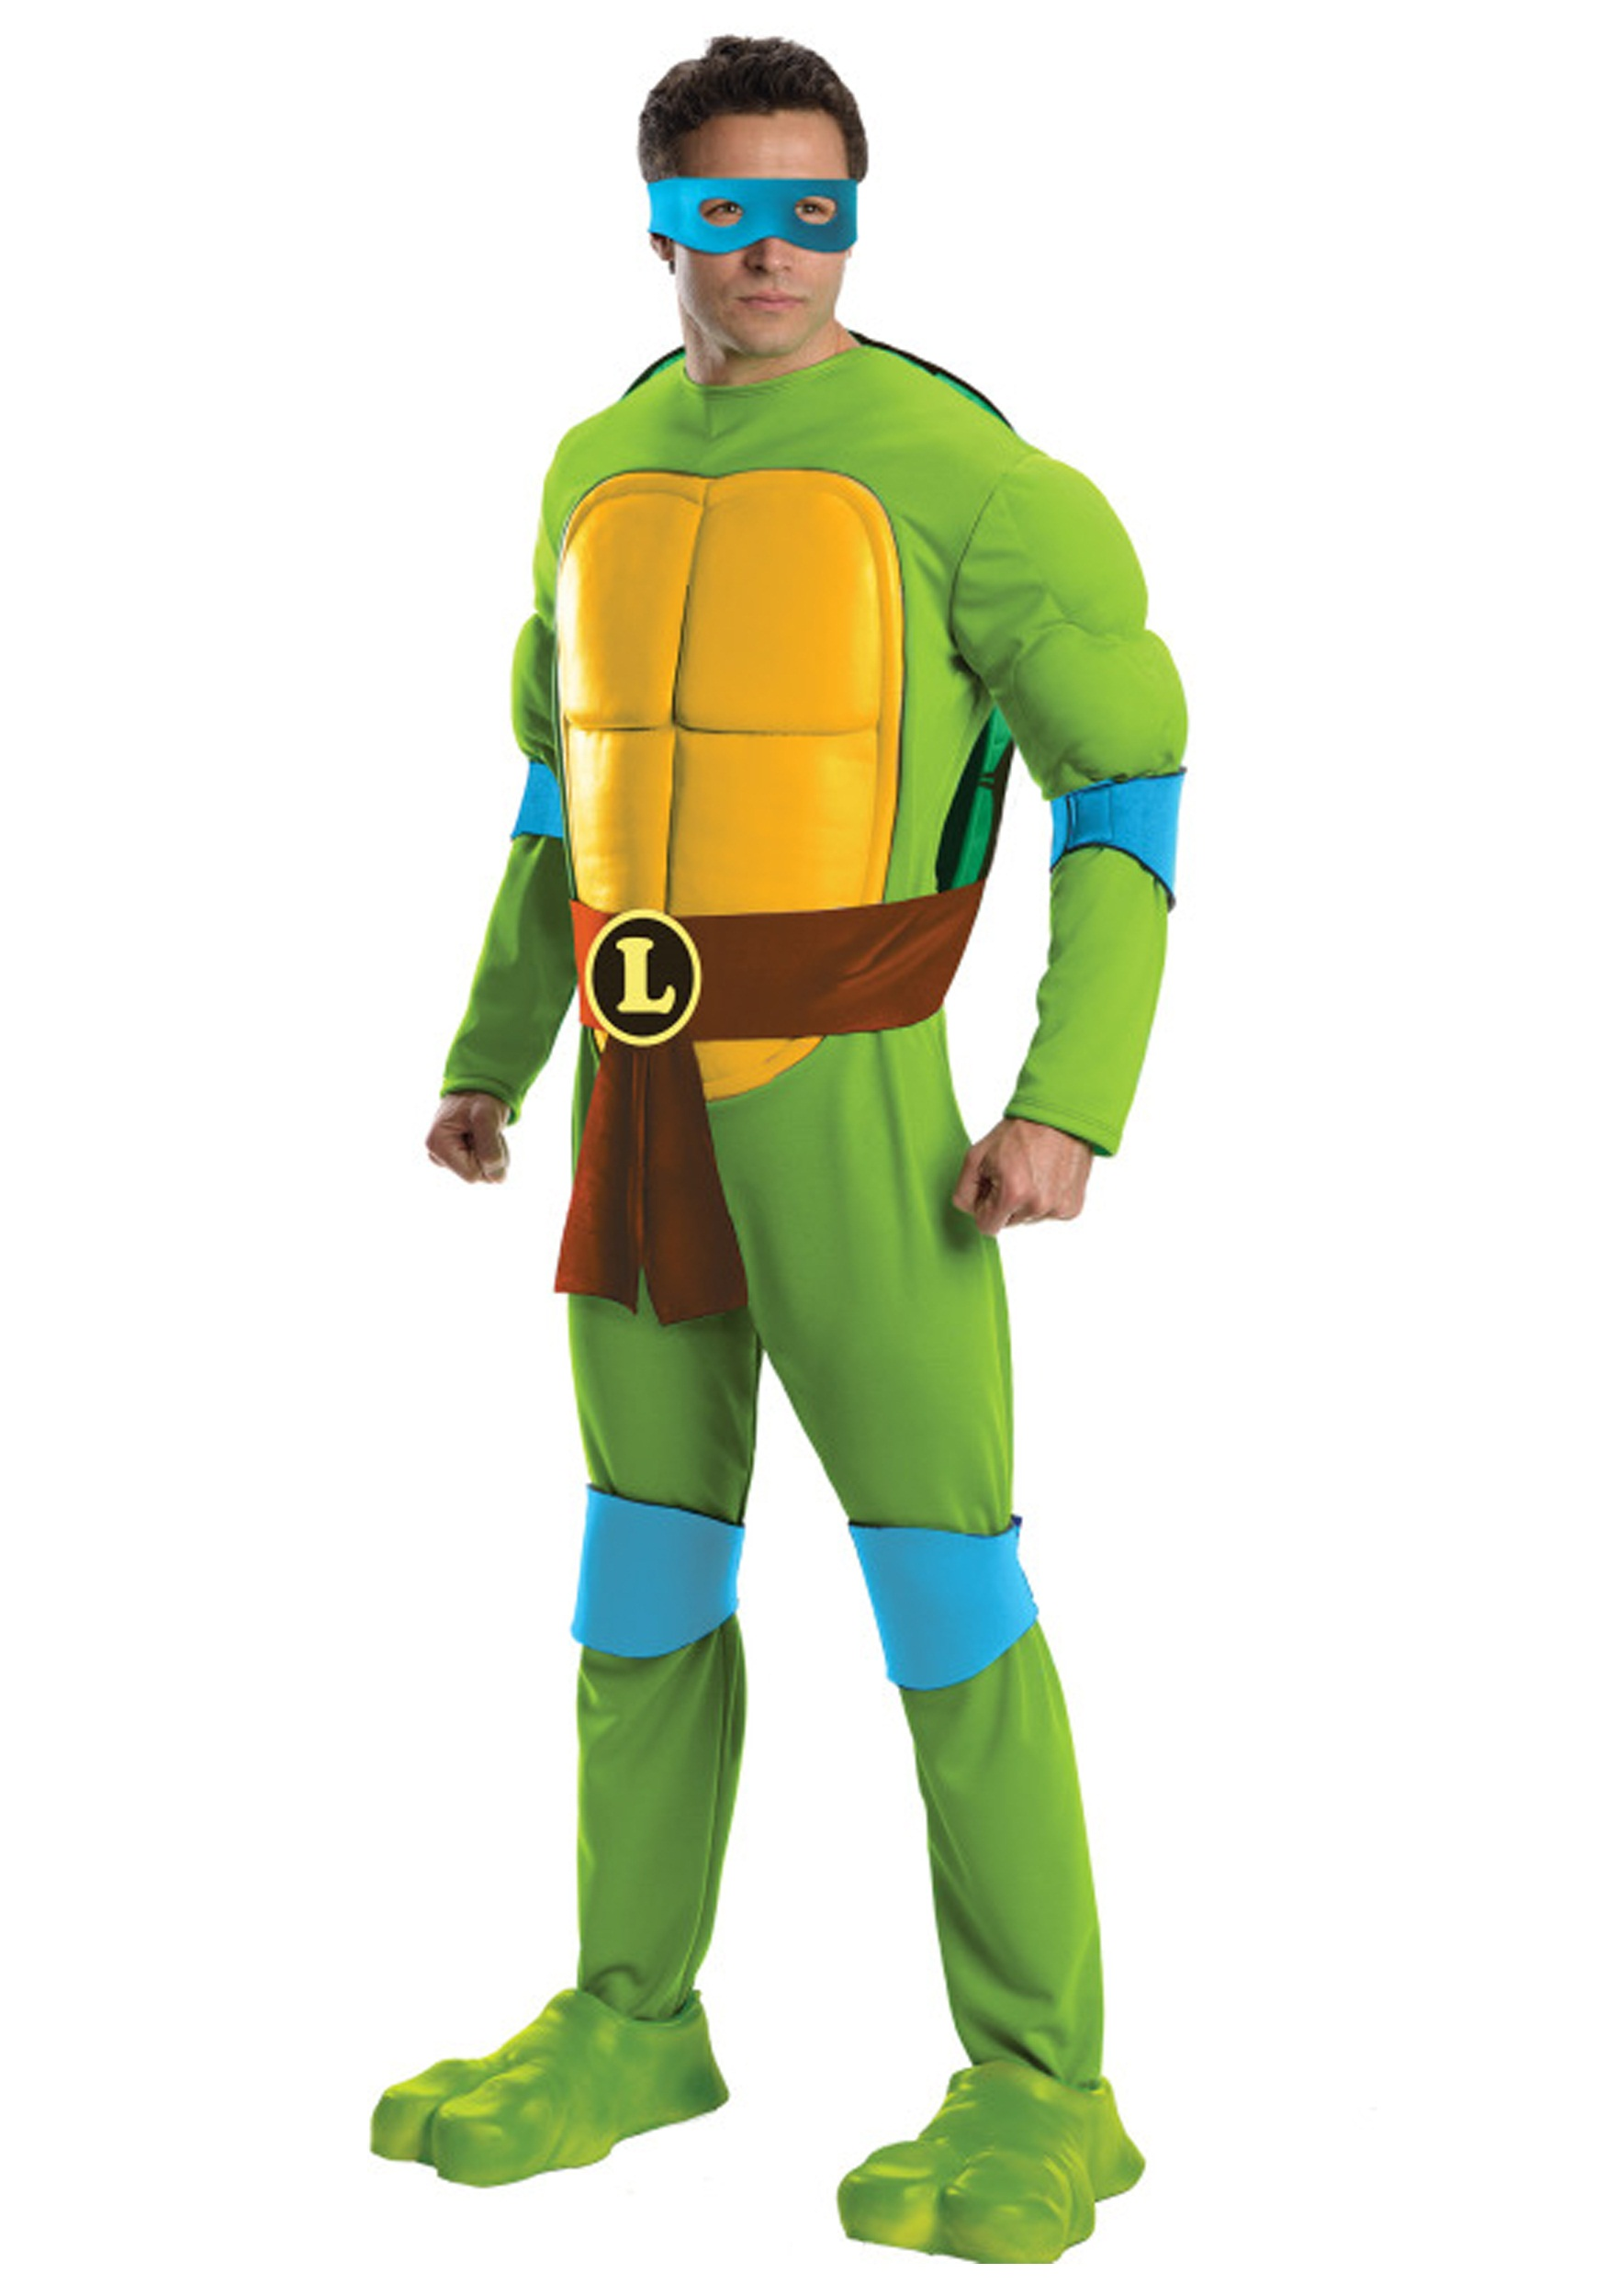 Deluxe TMNT Leonardo Menu0027s Costume  sc 1 st  Fun.com & Deluxe TMNT Leonardo Costume for Men